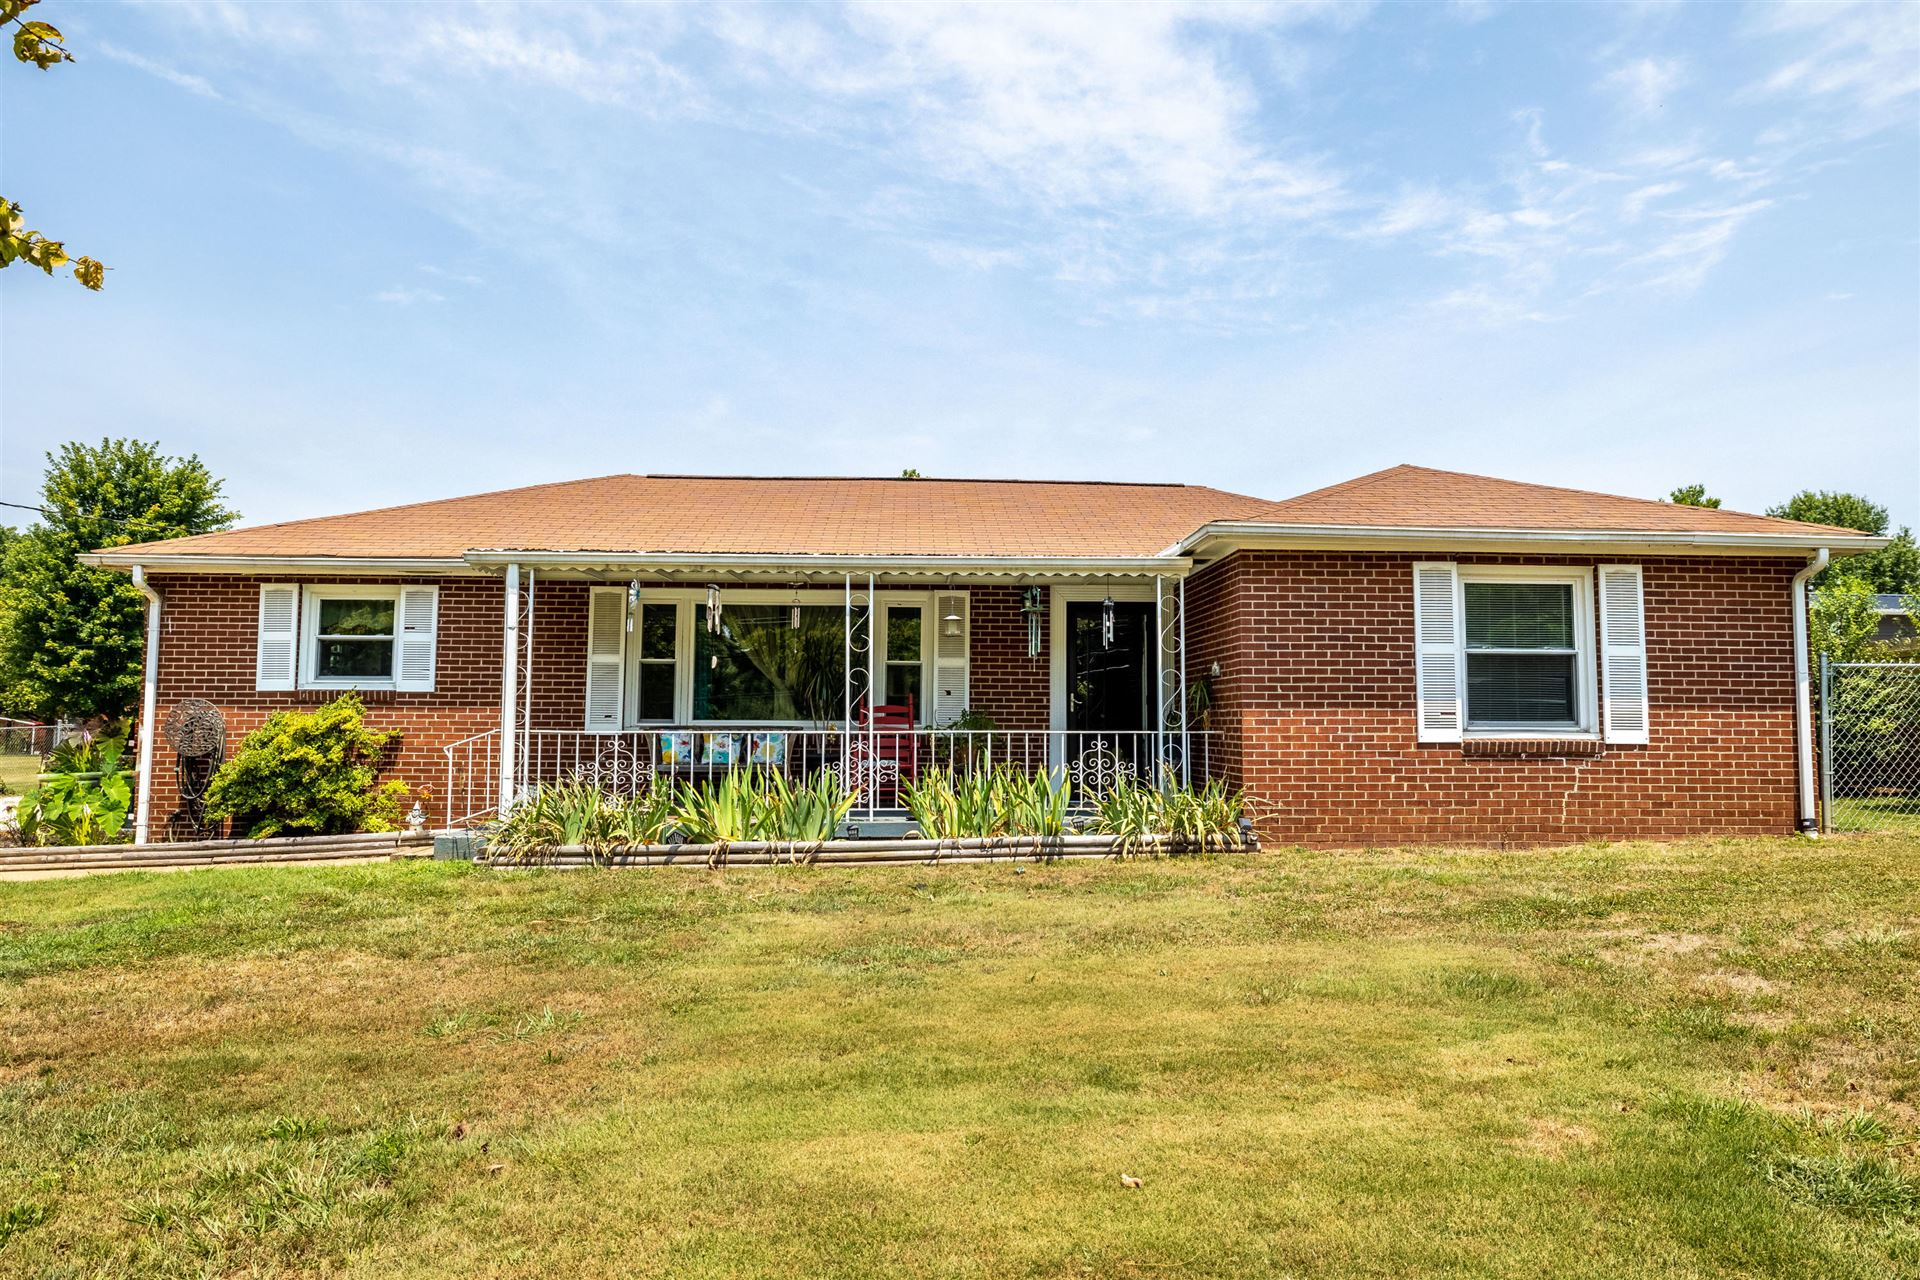 Photo of 4108 Sevierville Pike, Knoxville, TN 37920 (MLS # 1162365)